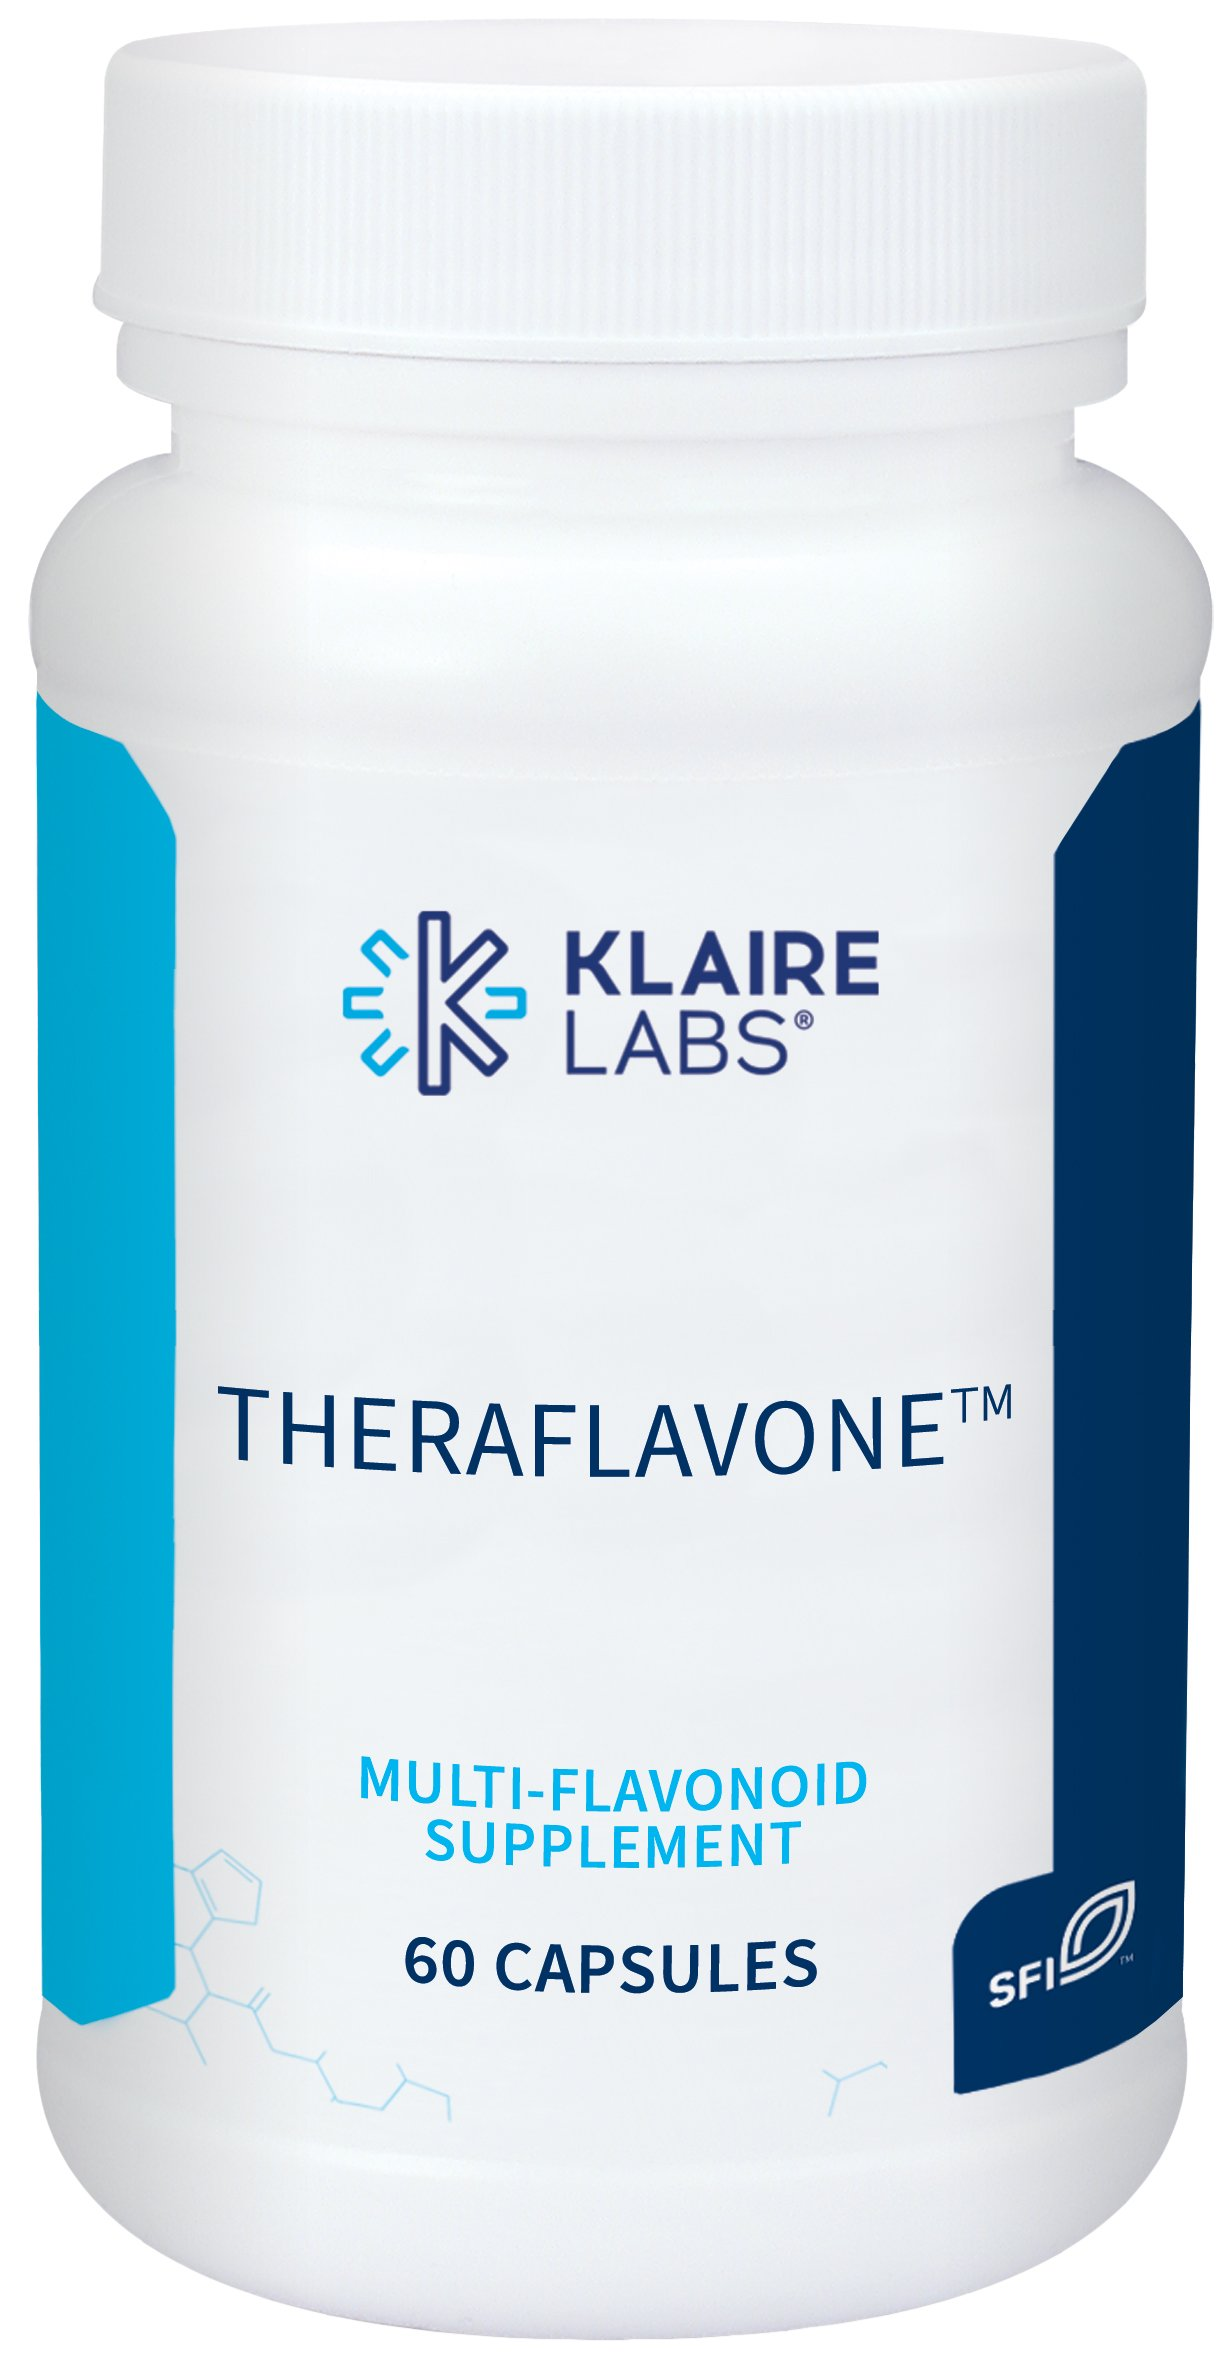 Klaire Labs (ProThera) Theraflavone - Flavonoids with Pycnogenol, Milk Thistle & Bilberry (60 Capsules) by Prothera